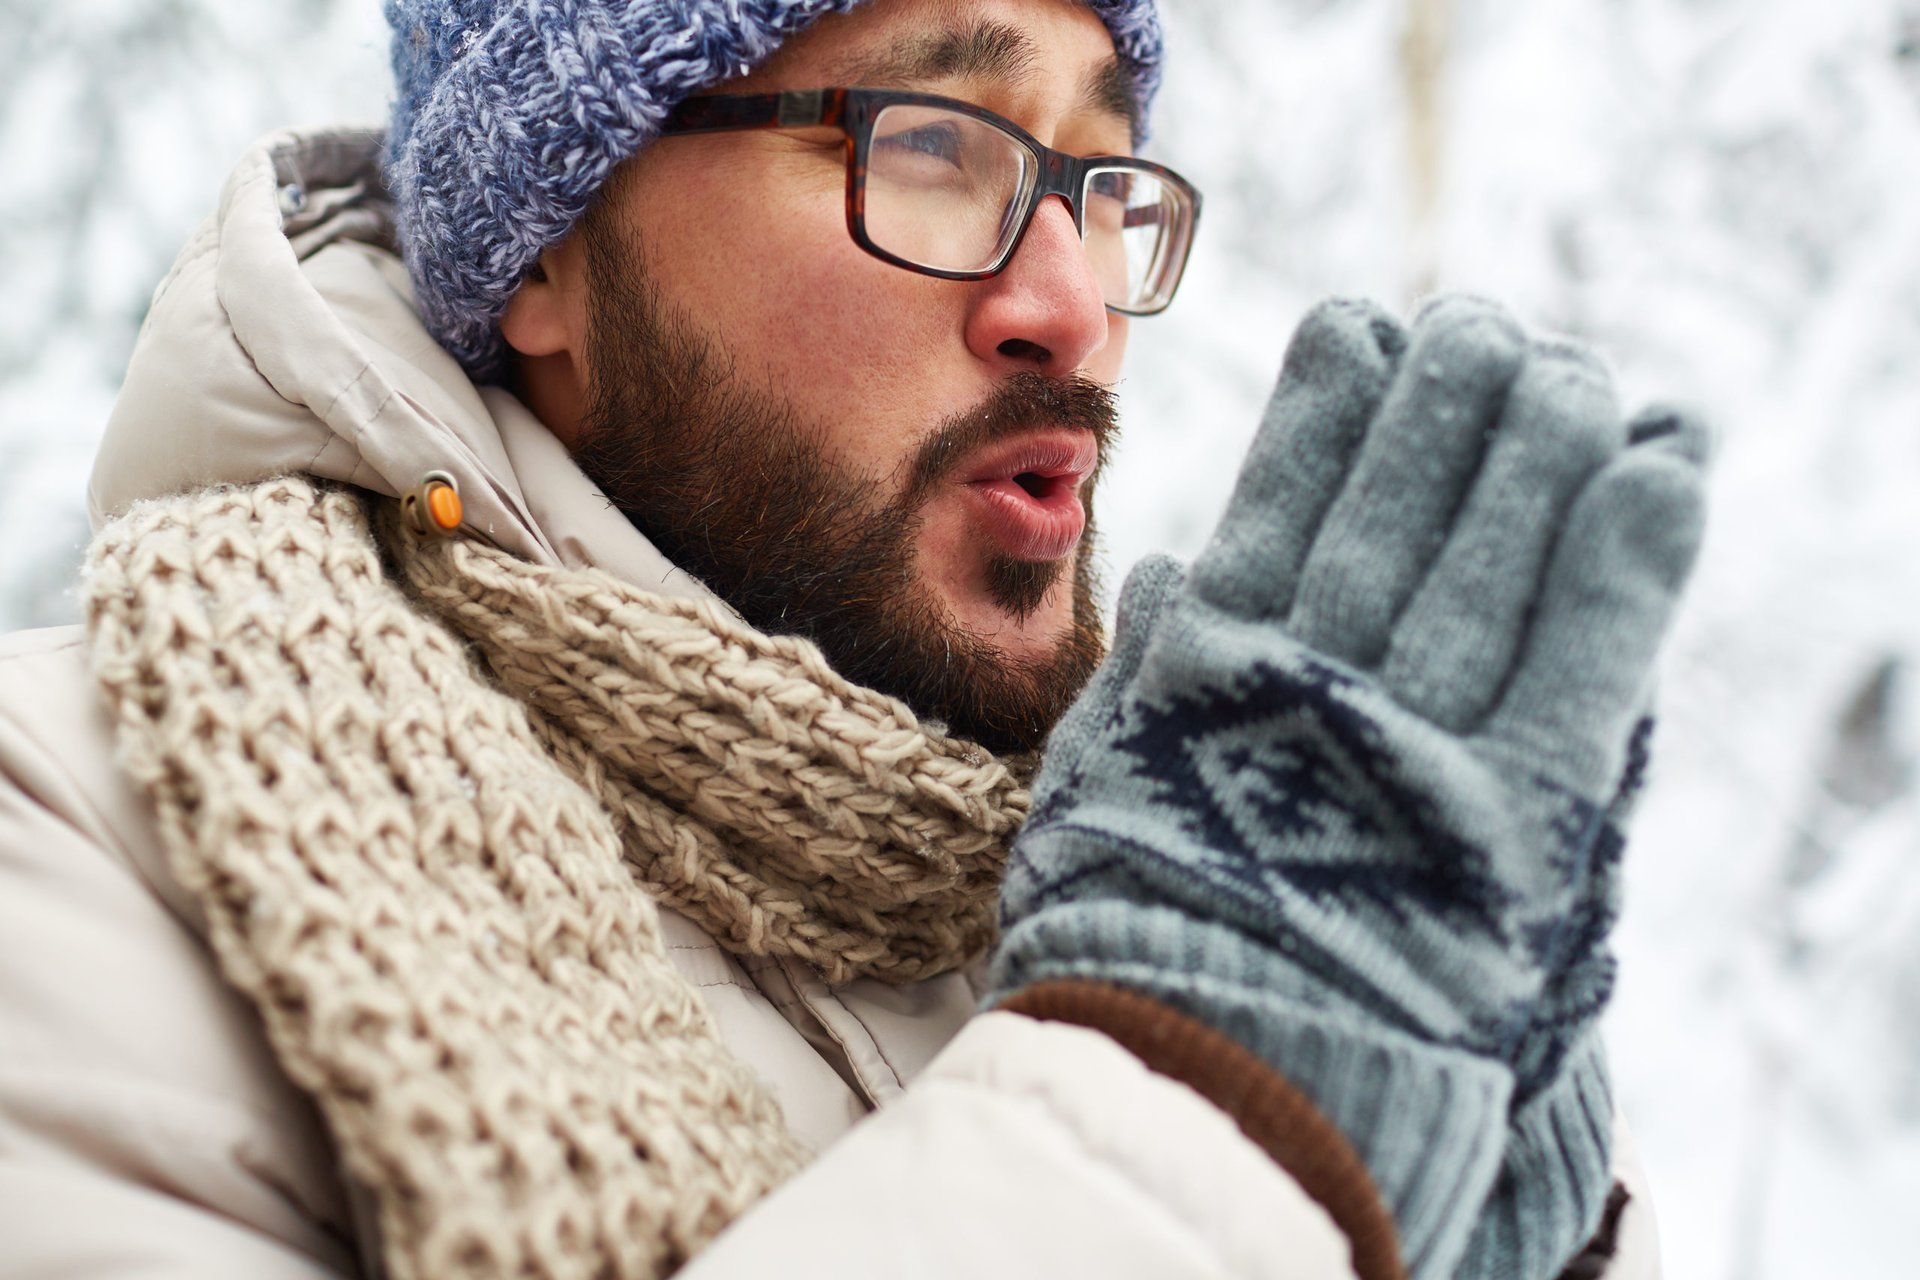 Man in winter clothing